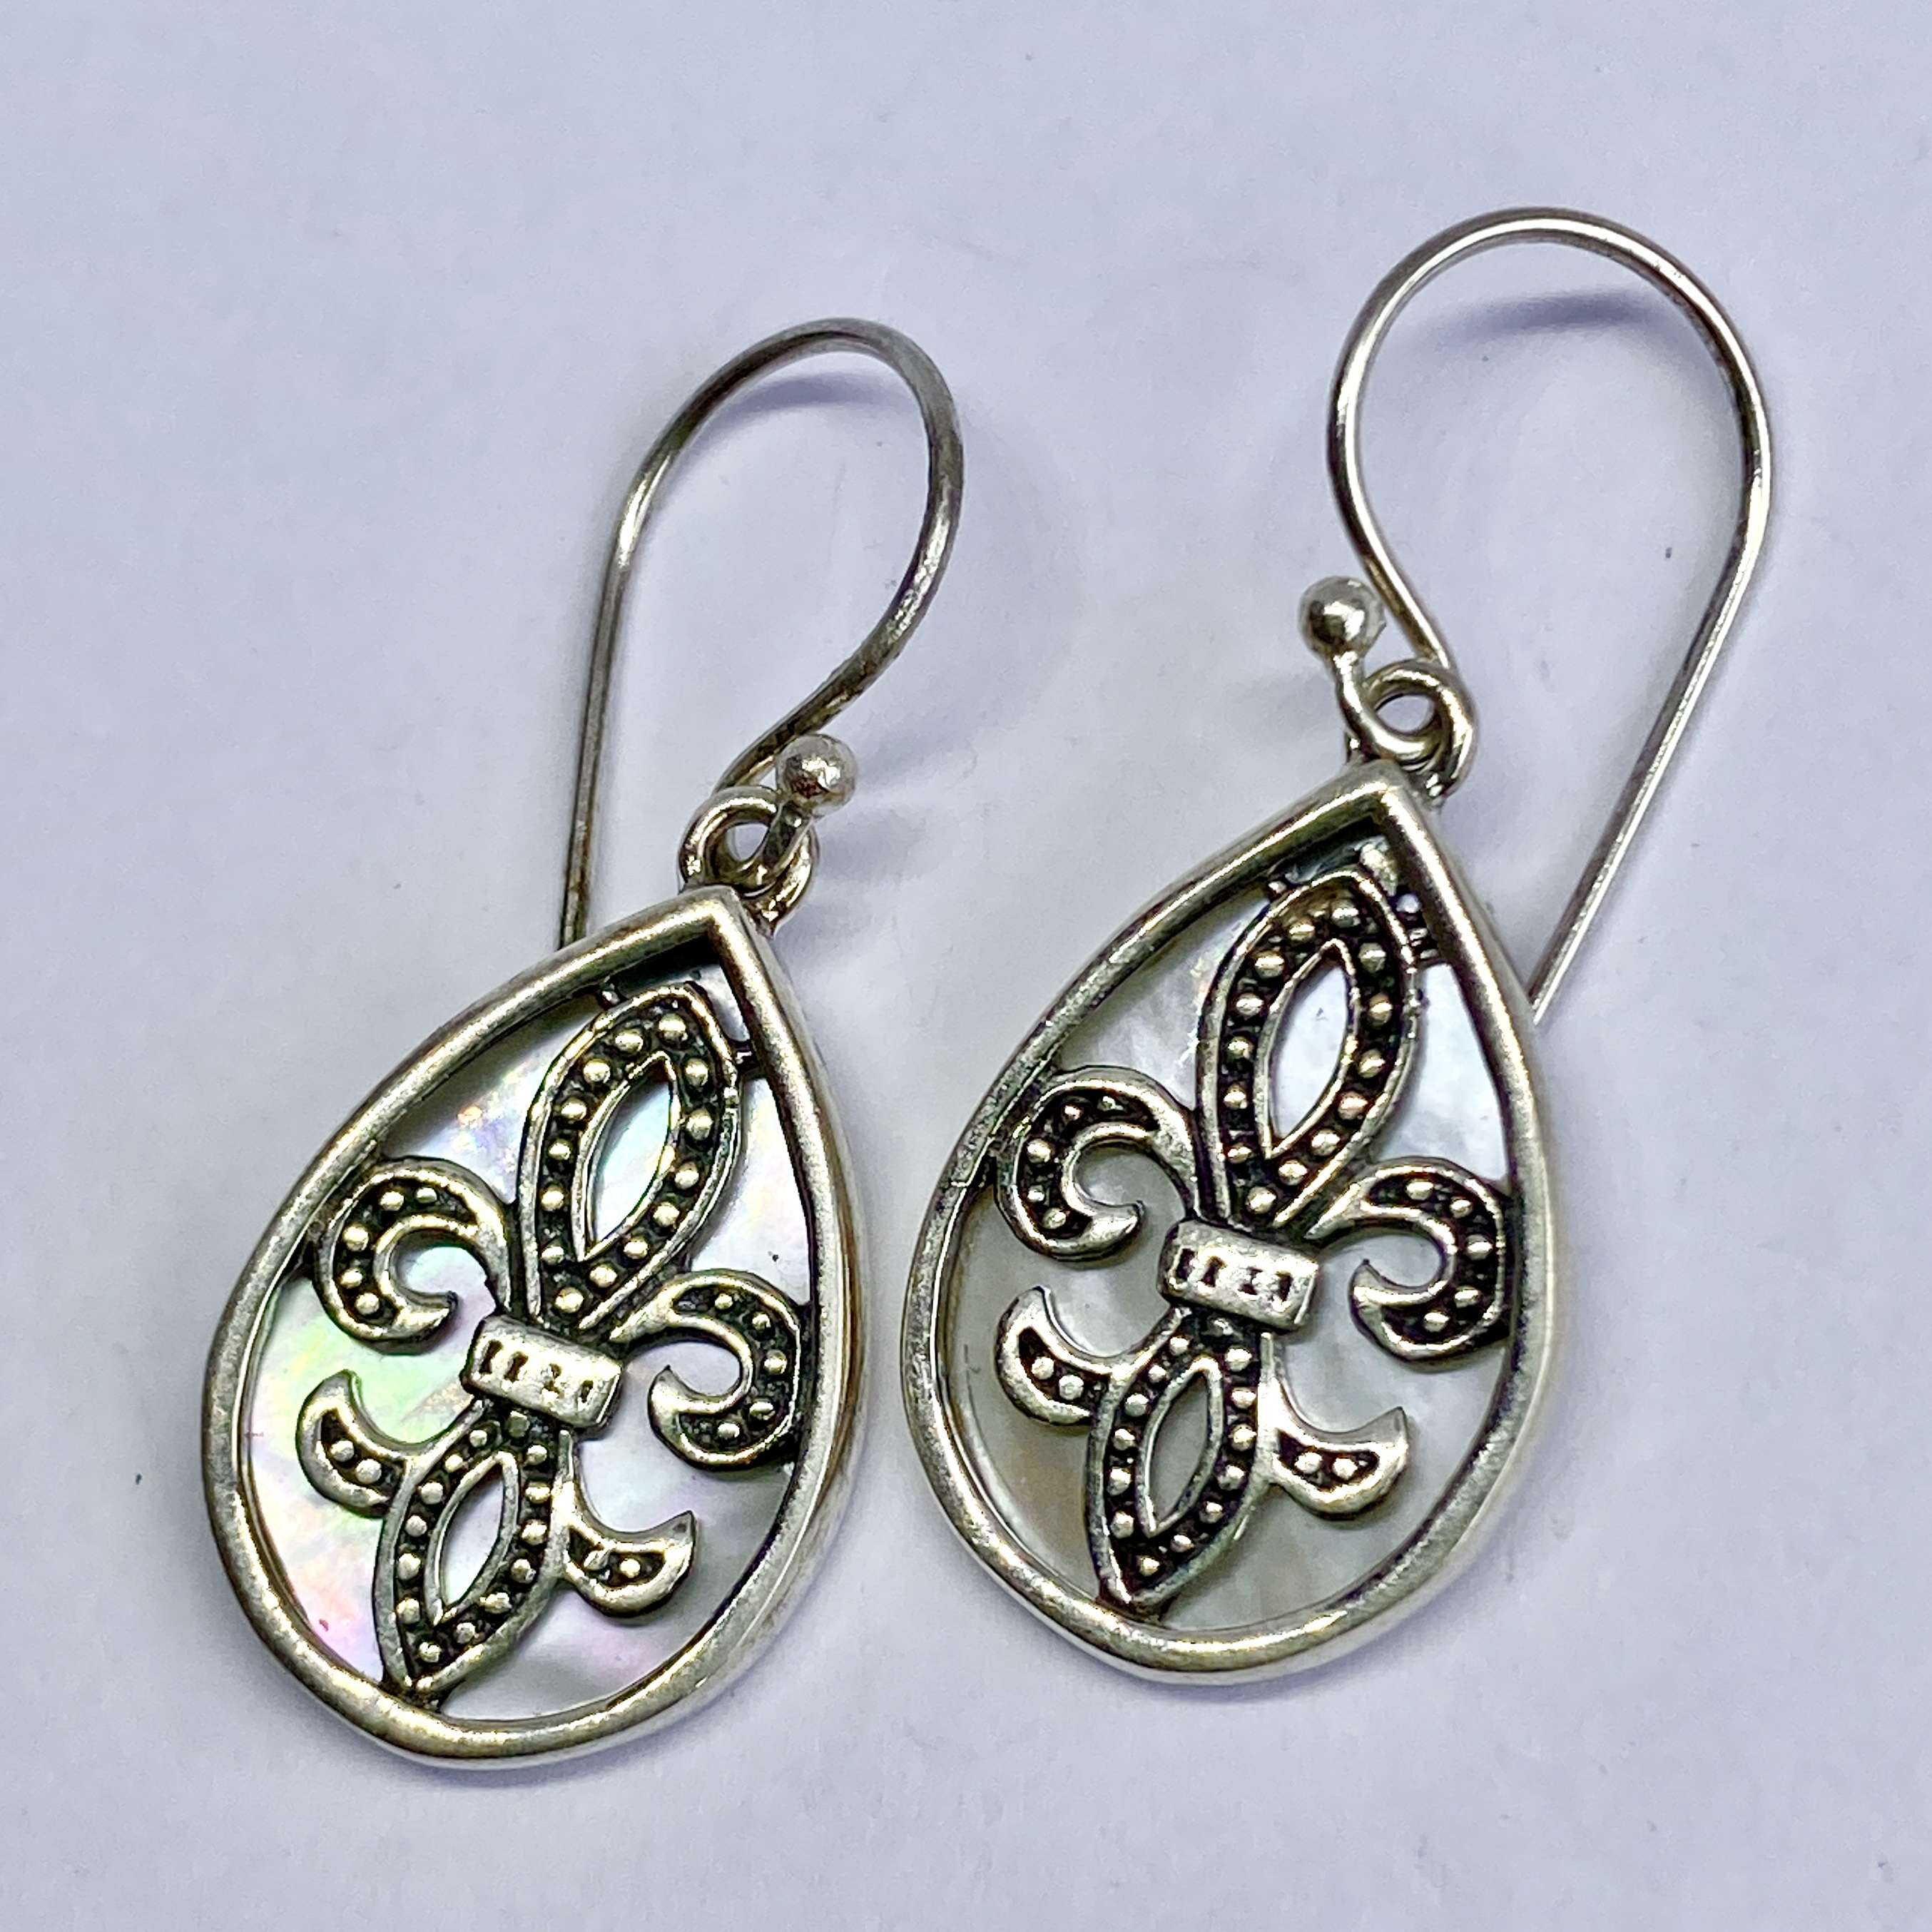 (BALI 925 STERLING SILVER EARRINGS WITH MOTHER OF PEARL)